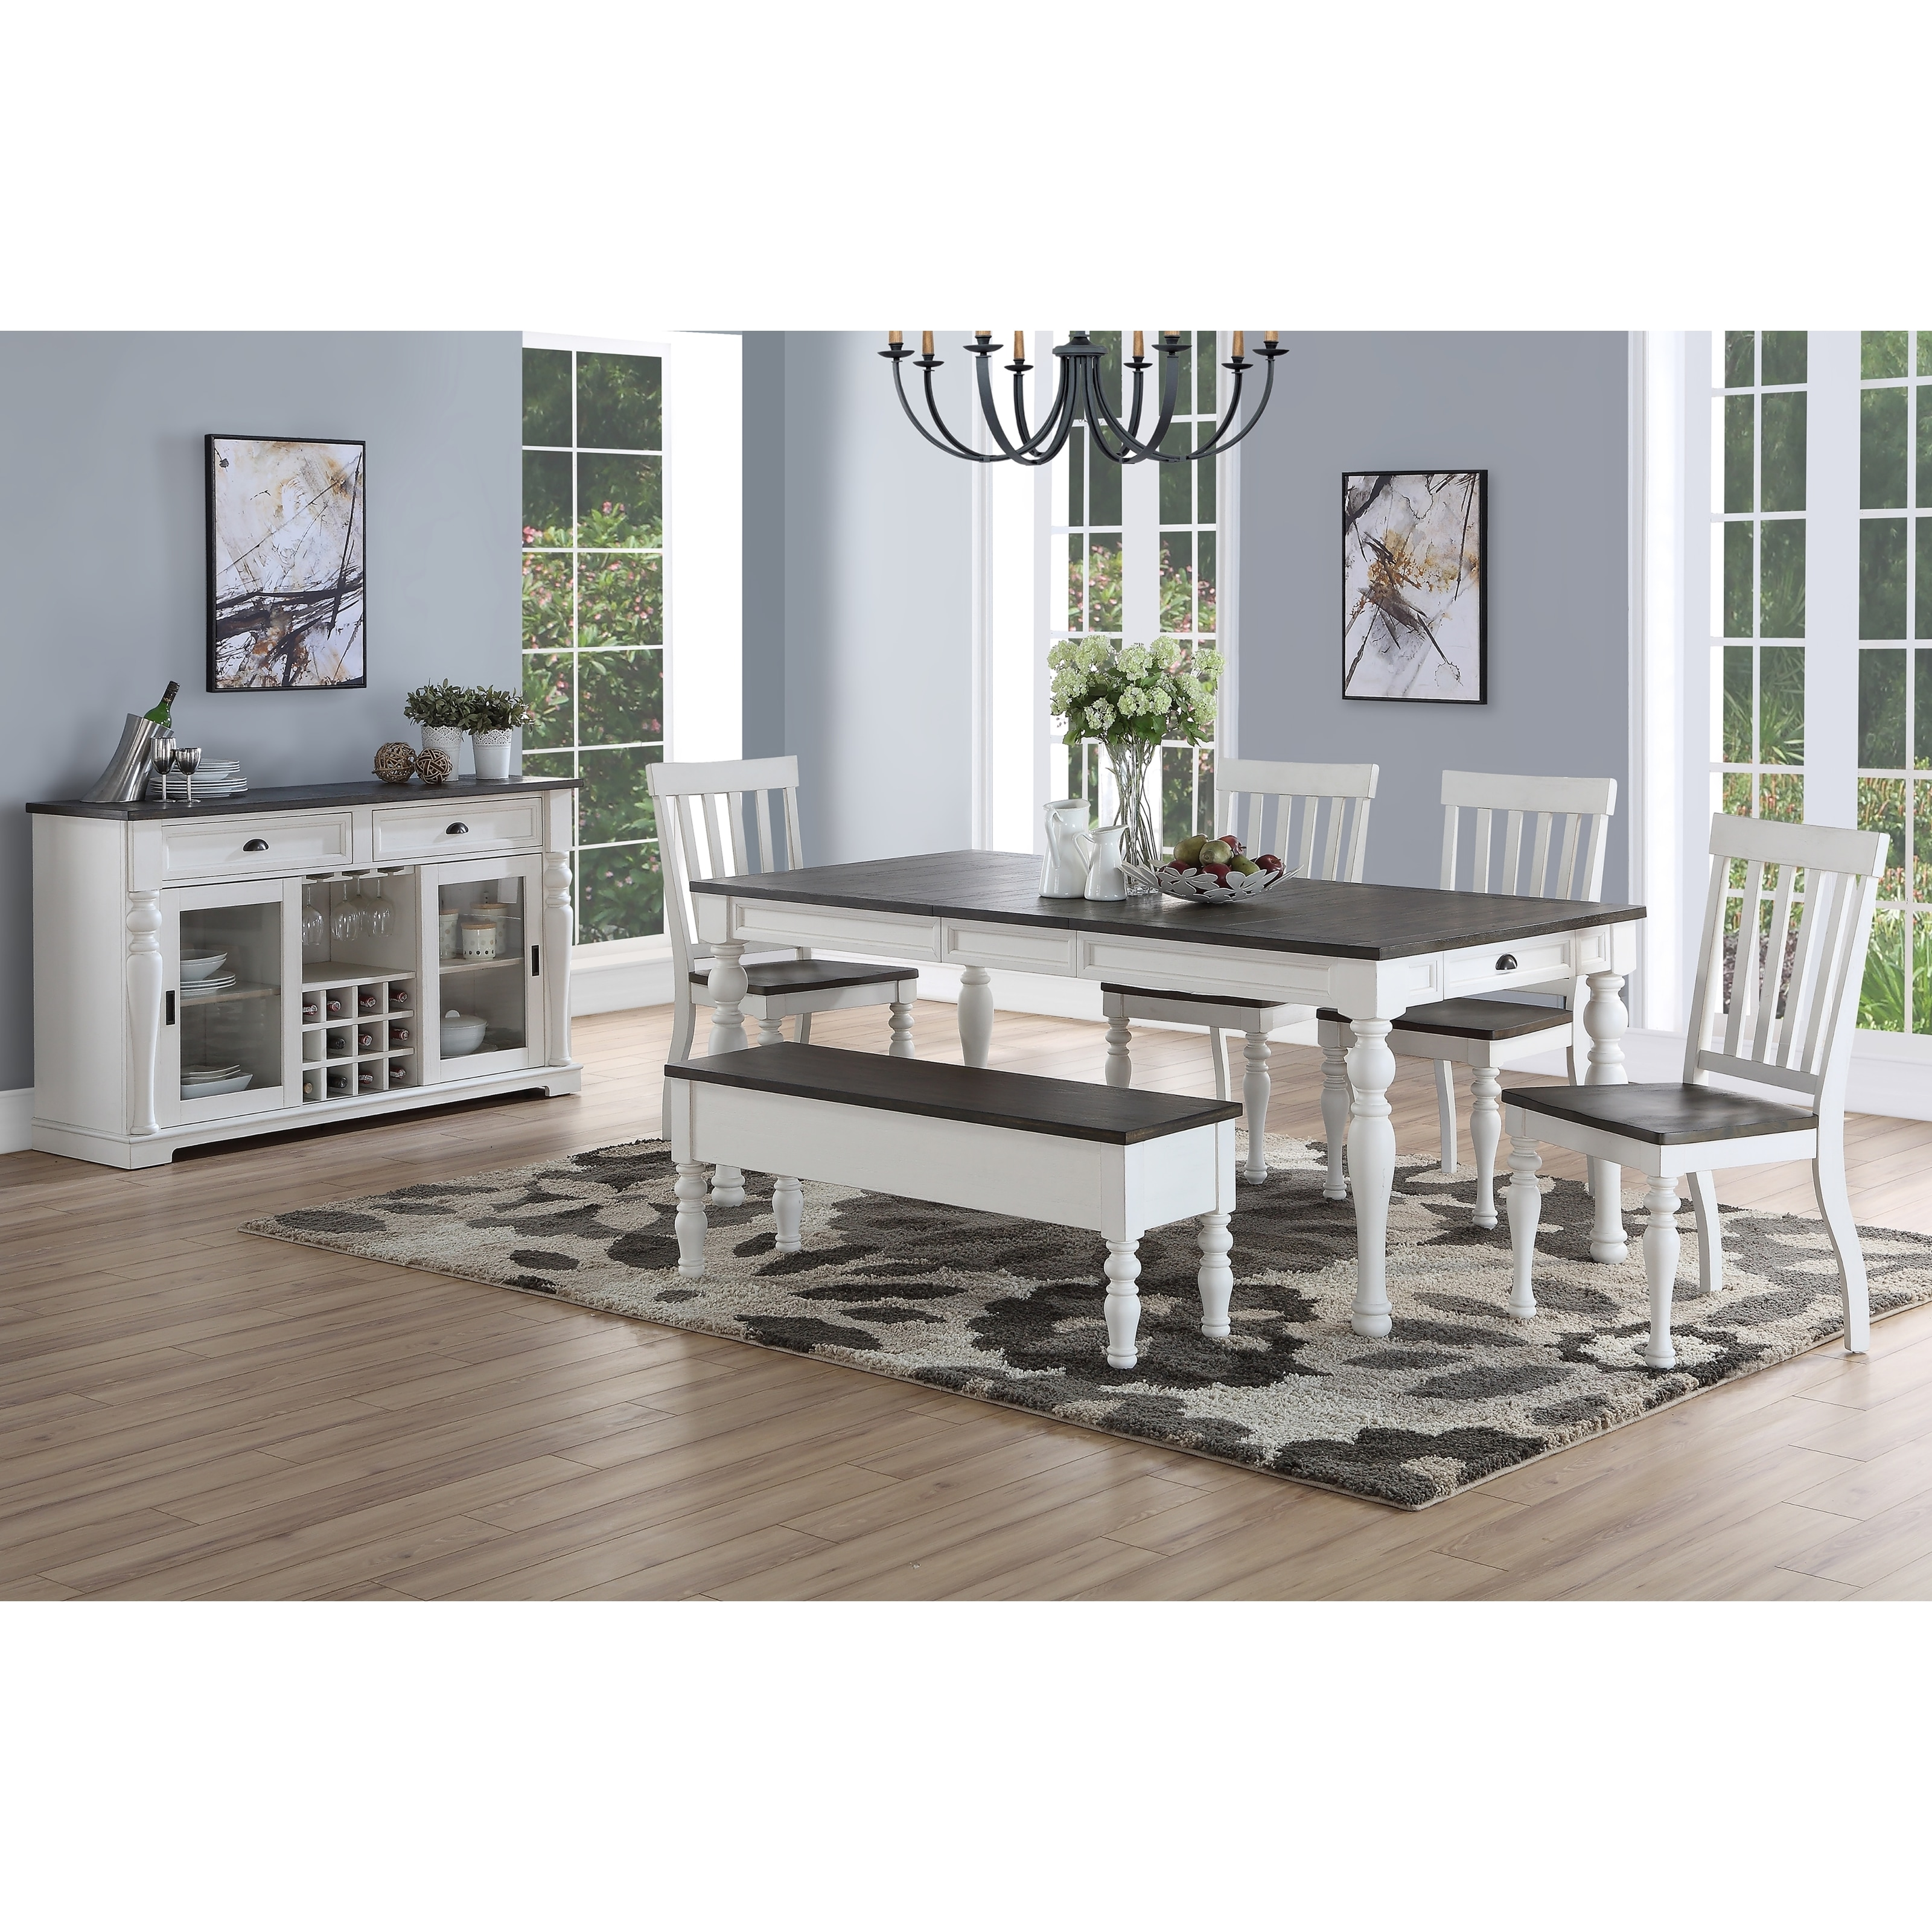 Shop Jillian Farmhouse Two Tone Dining Set By Greyson Living On